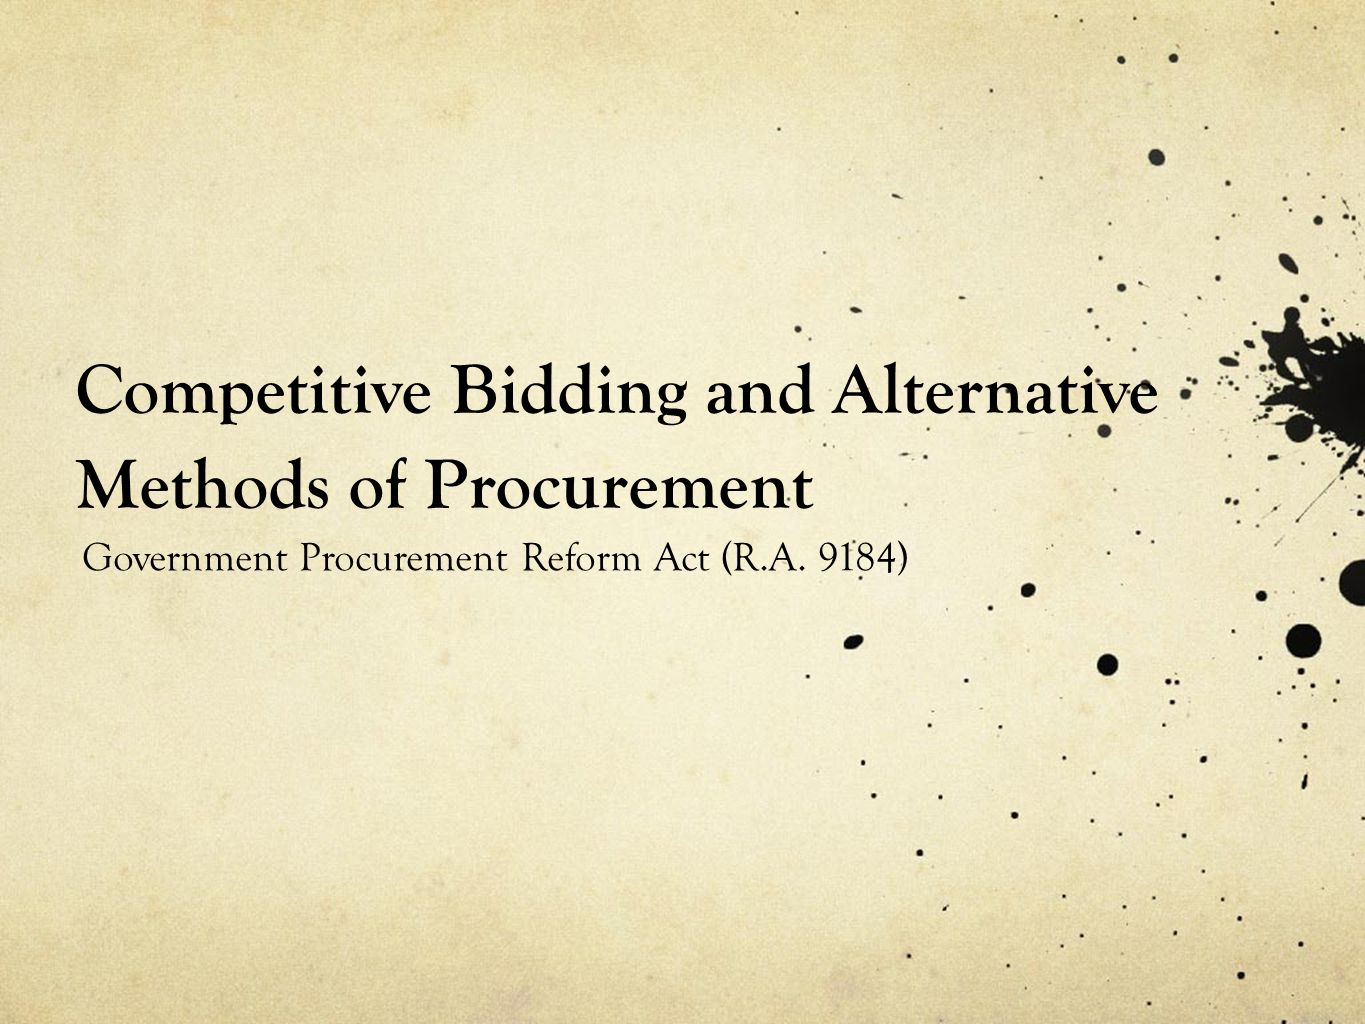 Competitive Bidding and Alternative Methods of Procurement